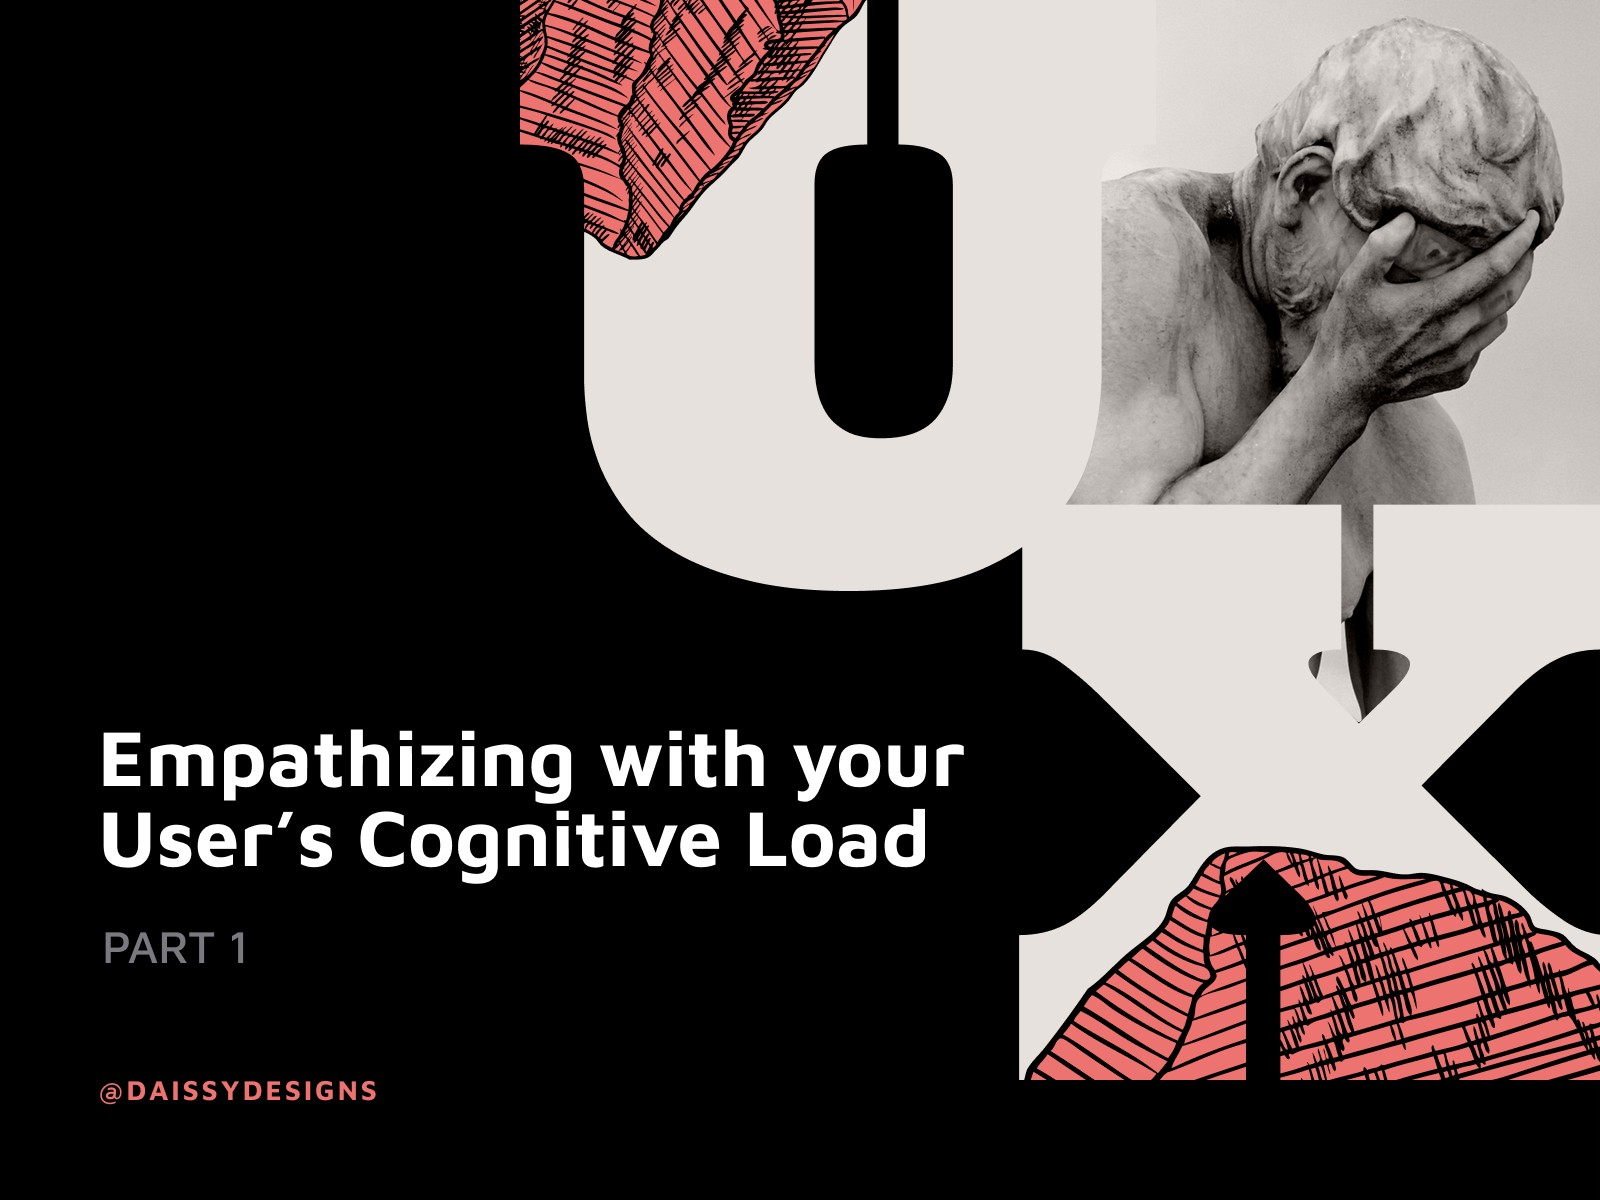 Empathizing with your User's Cognitive Load Part 1